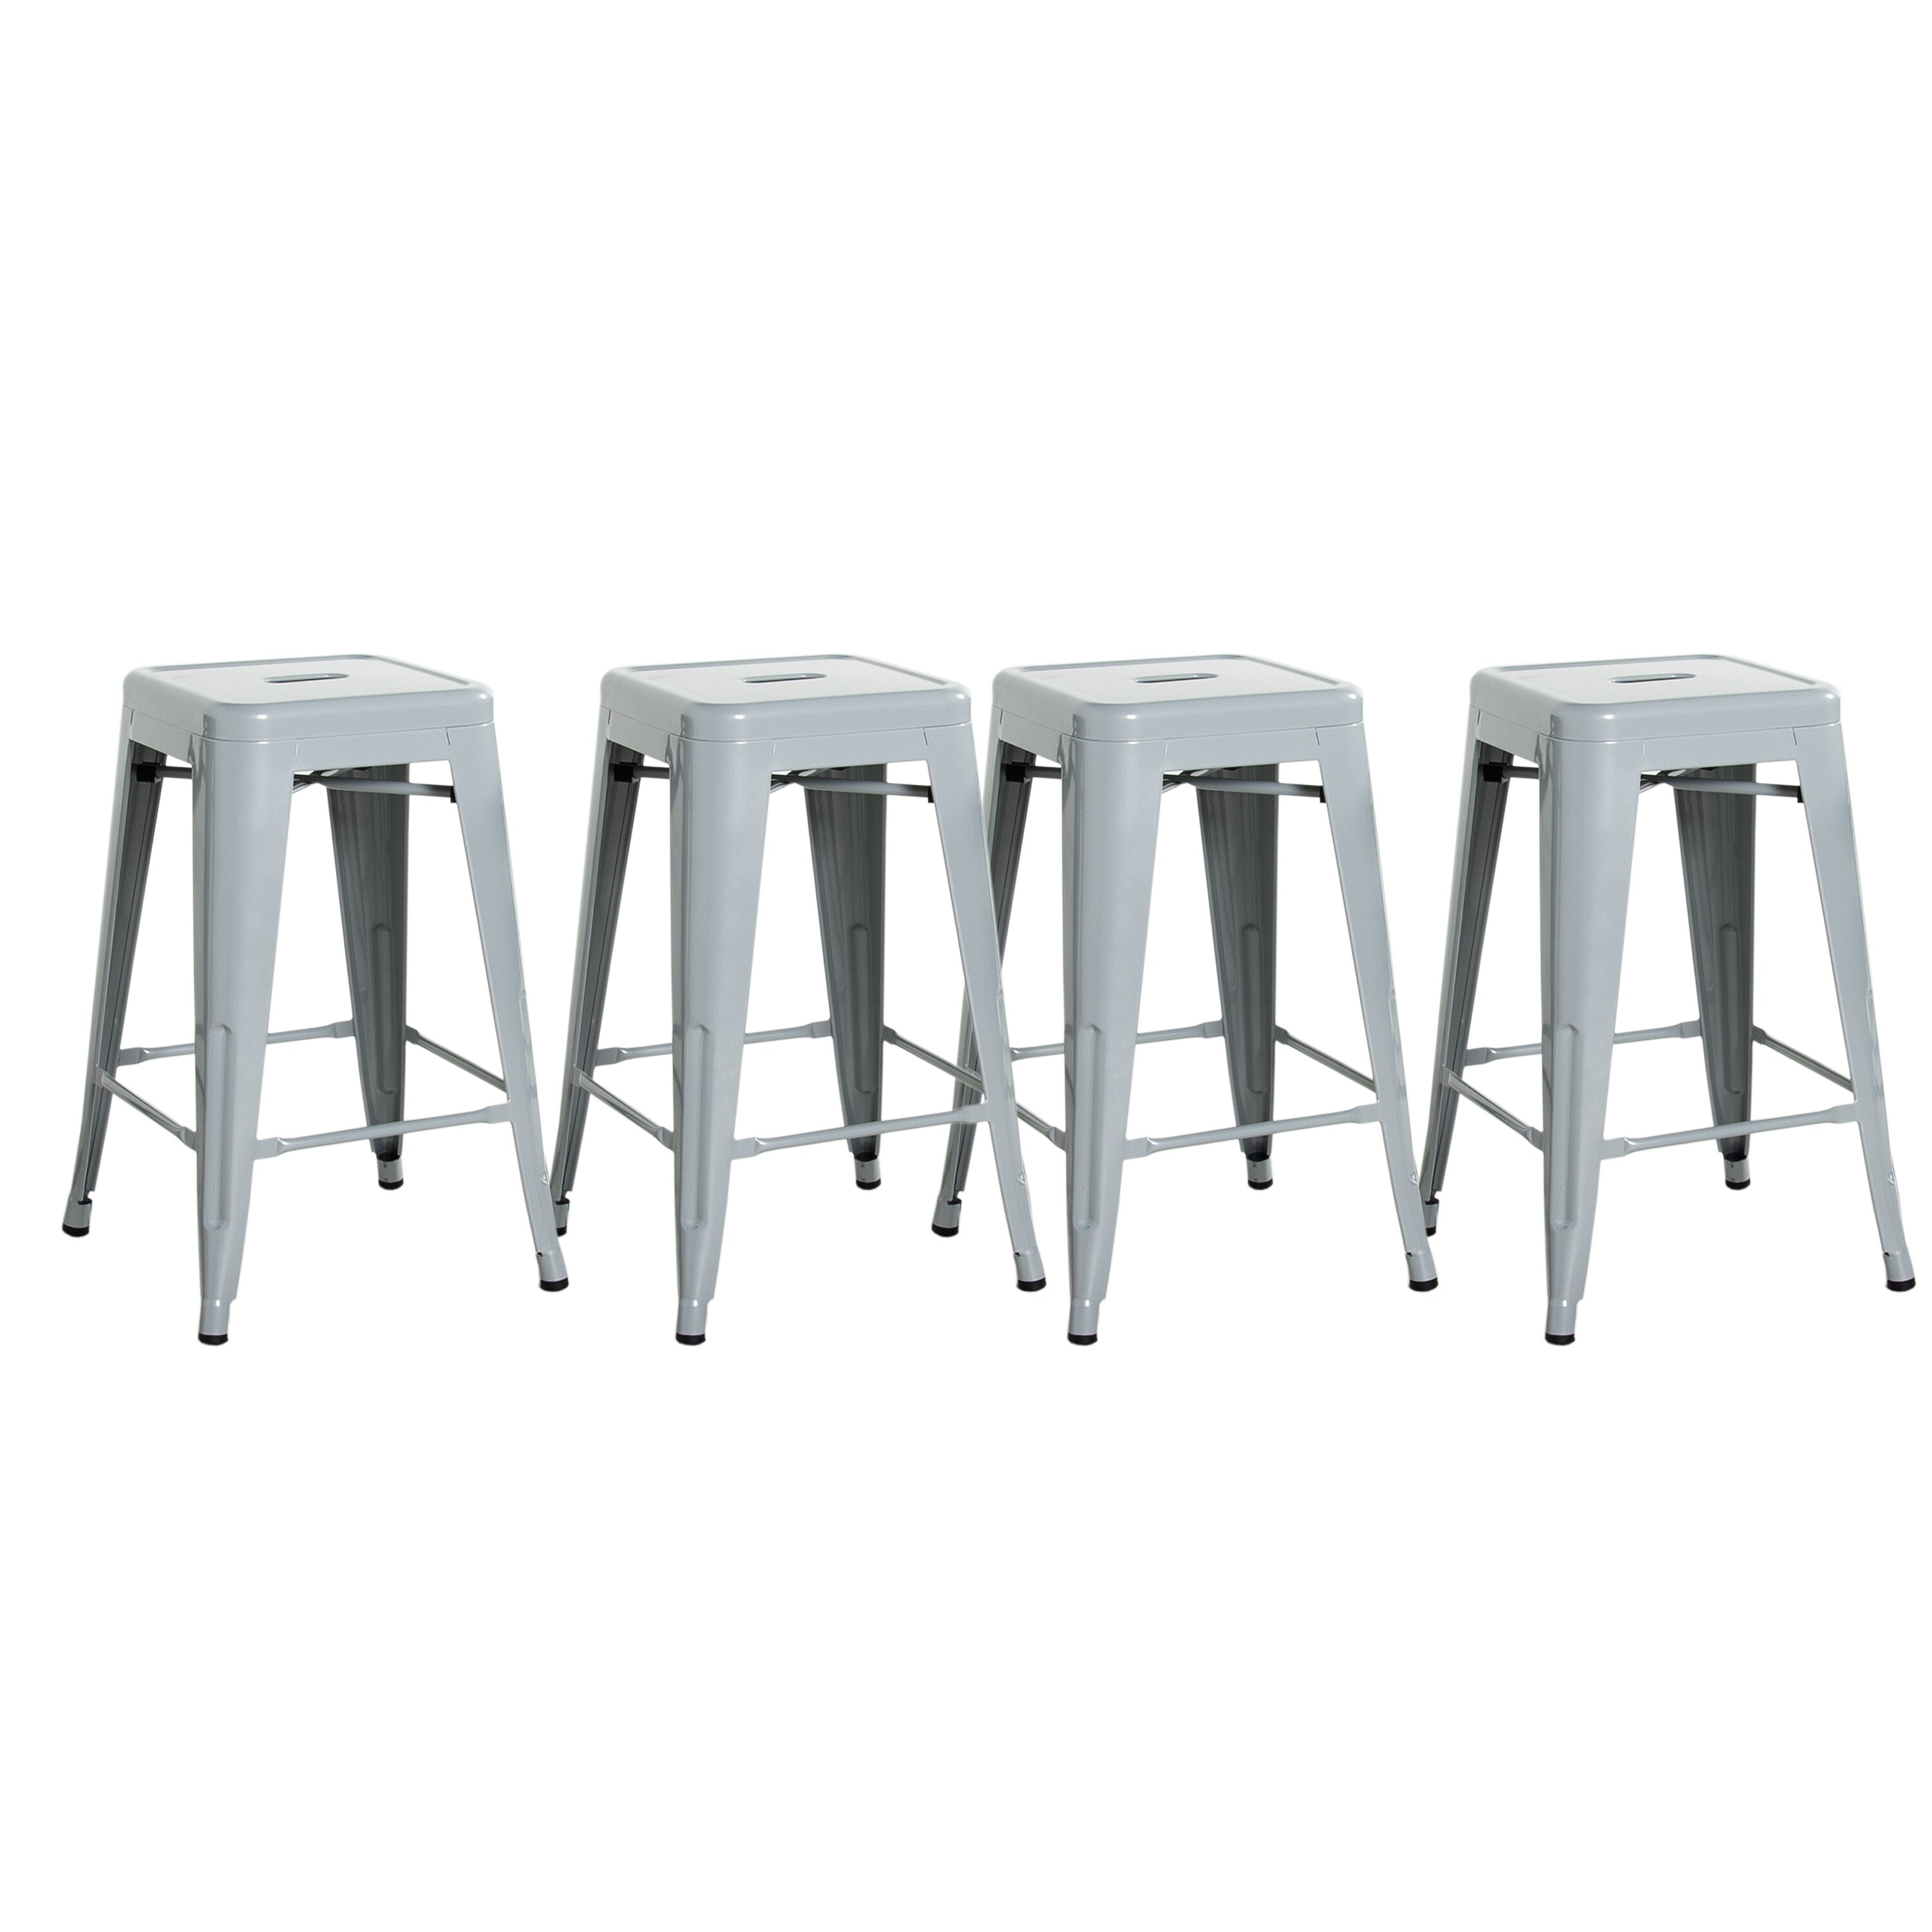 Awesome Cap Living 24 Inches Stackable Sturdy Square Seat Metal Bar Stools Set Of 4 Colors Available In Glossy Black Silver Or Dark Gunmetal Uwap Interior Chair Design Uwaporg